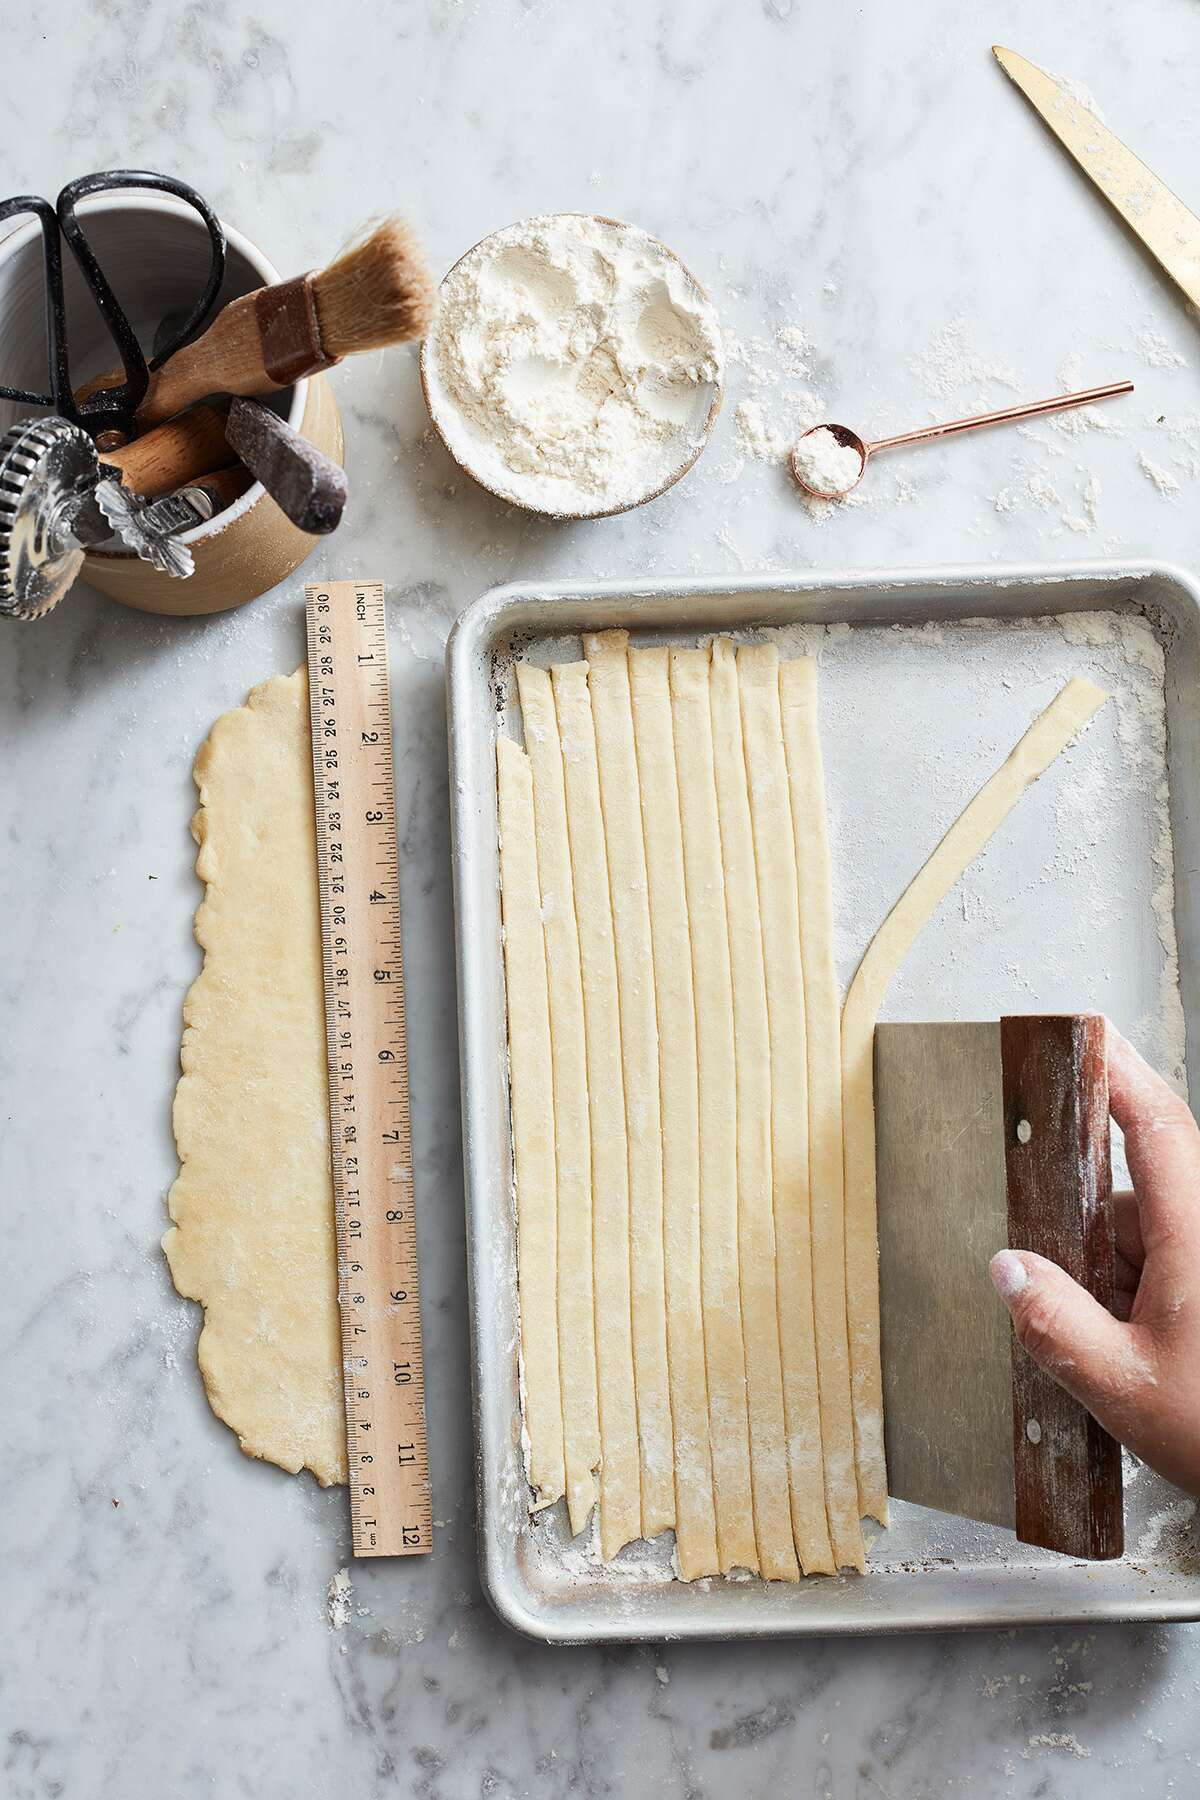 Fancy pie crust via @kingarthurflour